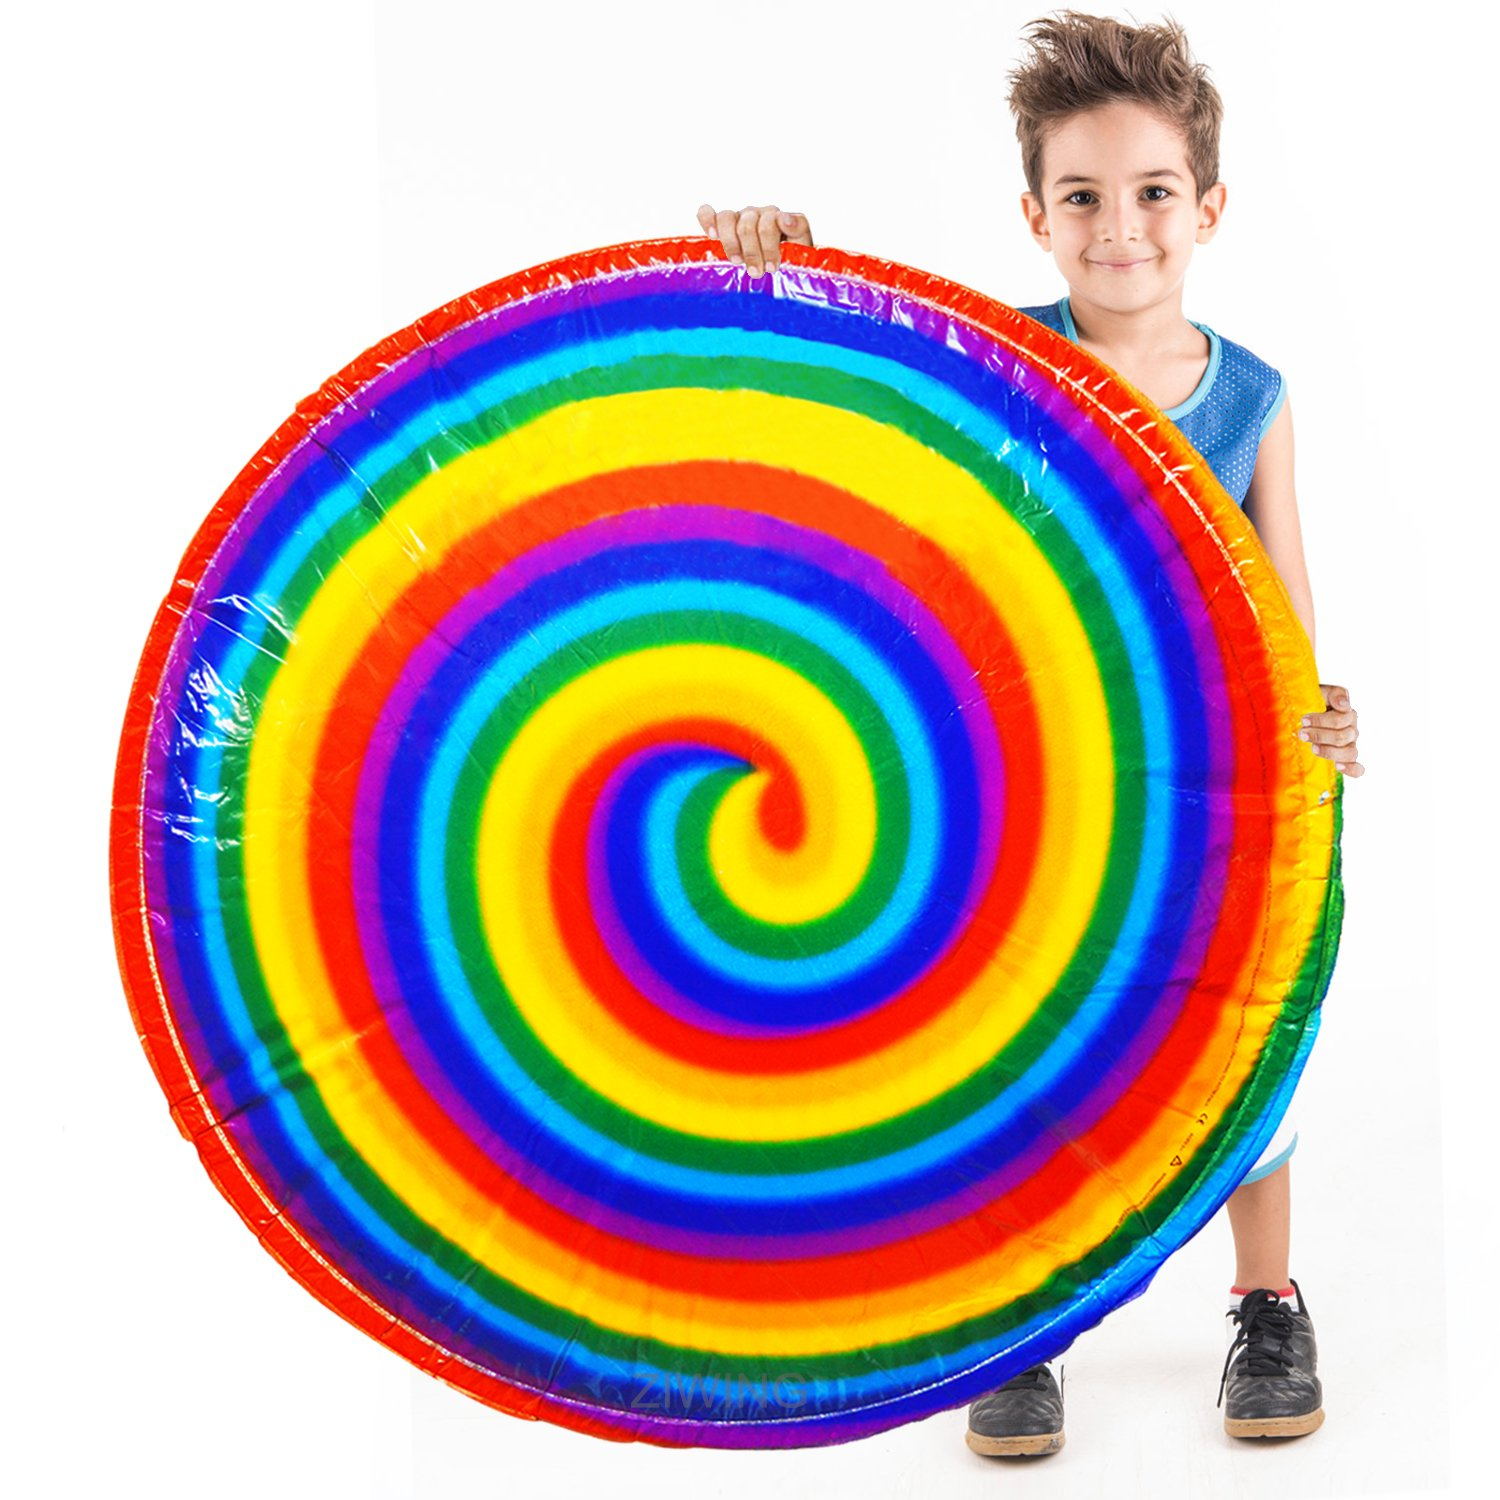 Hover HyperDisc Flying Disc Air Spinner Rainbow Printed Child Kids Great Outdoor Toys Safety Popular Children Toy Gift-ForeverMagicToys china